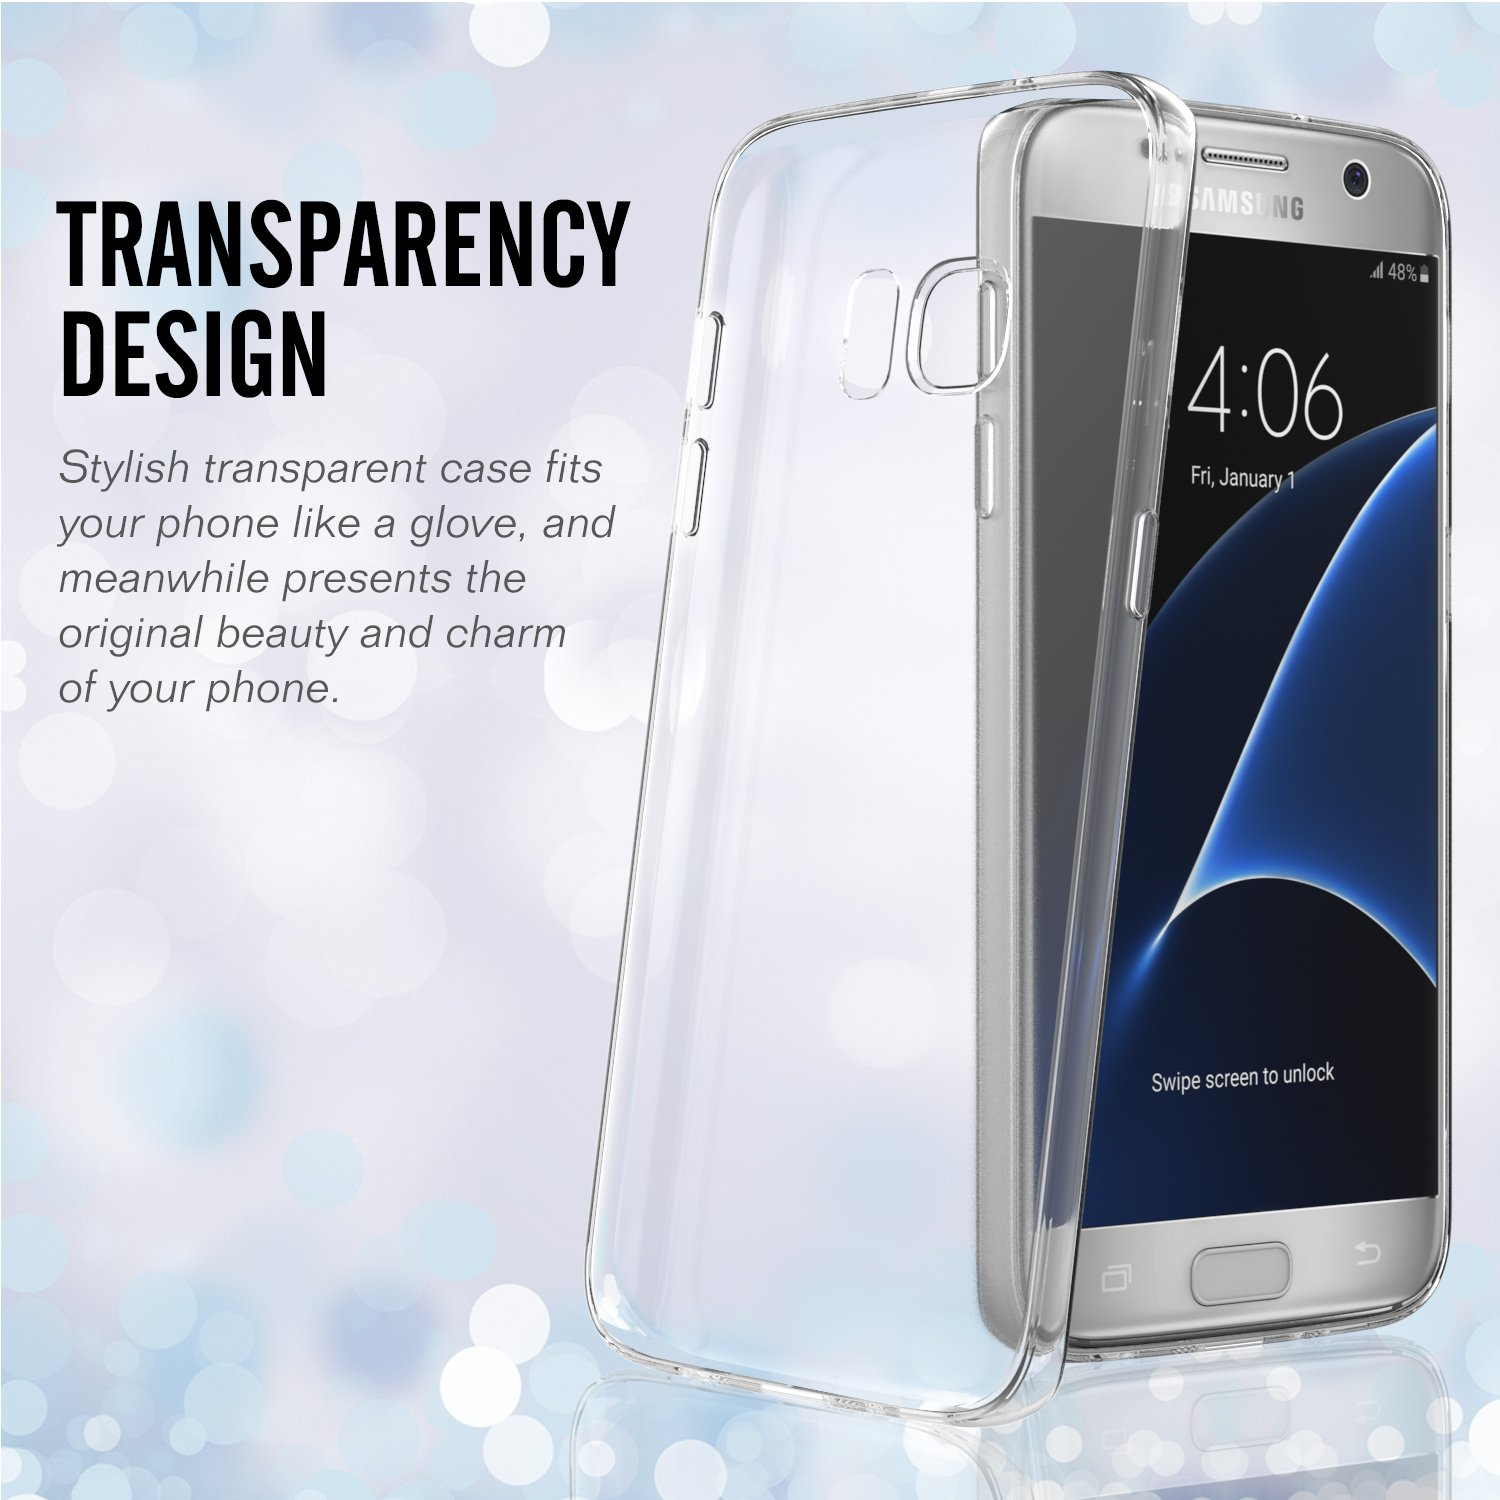 Amazon Galaxy S7 Case MoKo [3 PACK] Premium Ultra Thin Back Cover with Clear Panel TPU Bumper for Samsung Galaxy S7 5 1 Inch Smartphone 2016